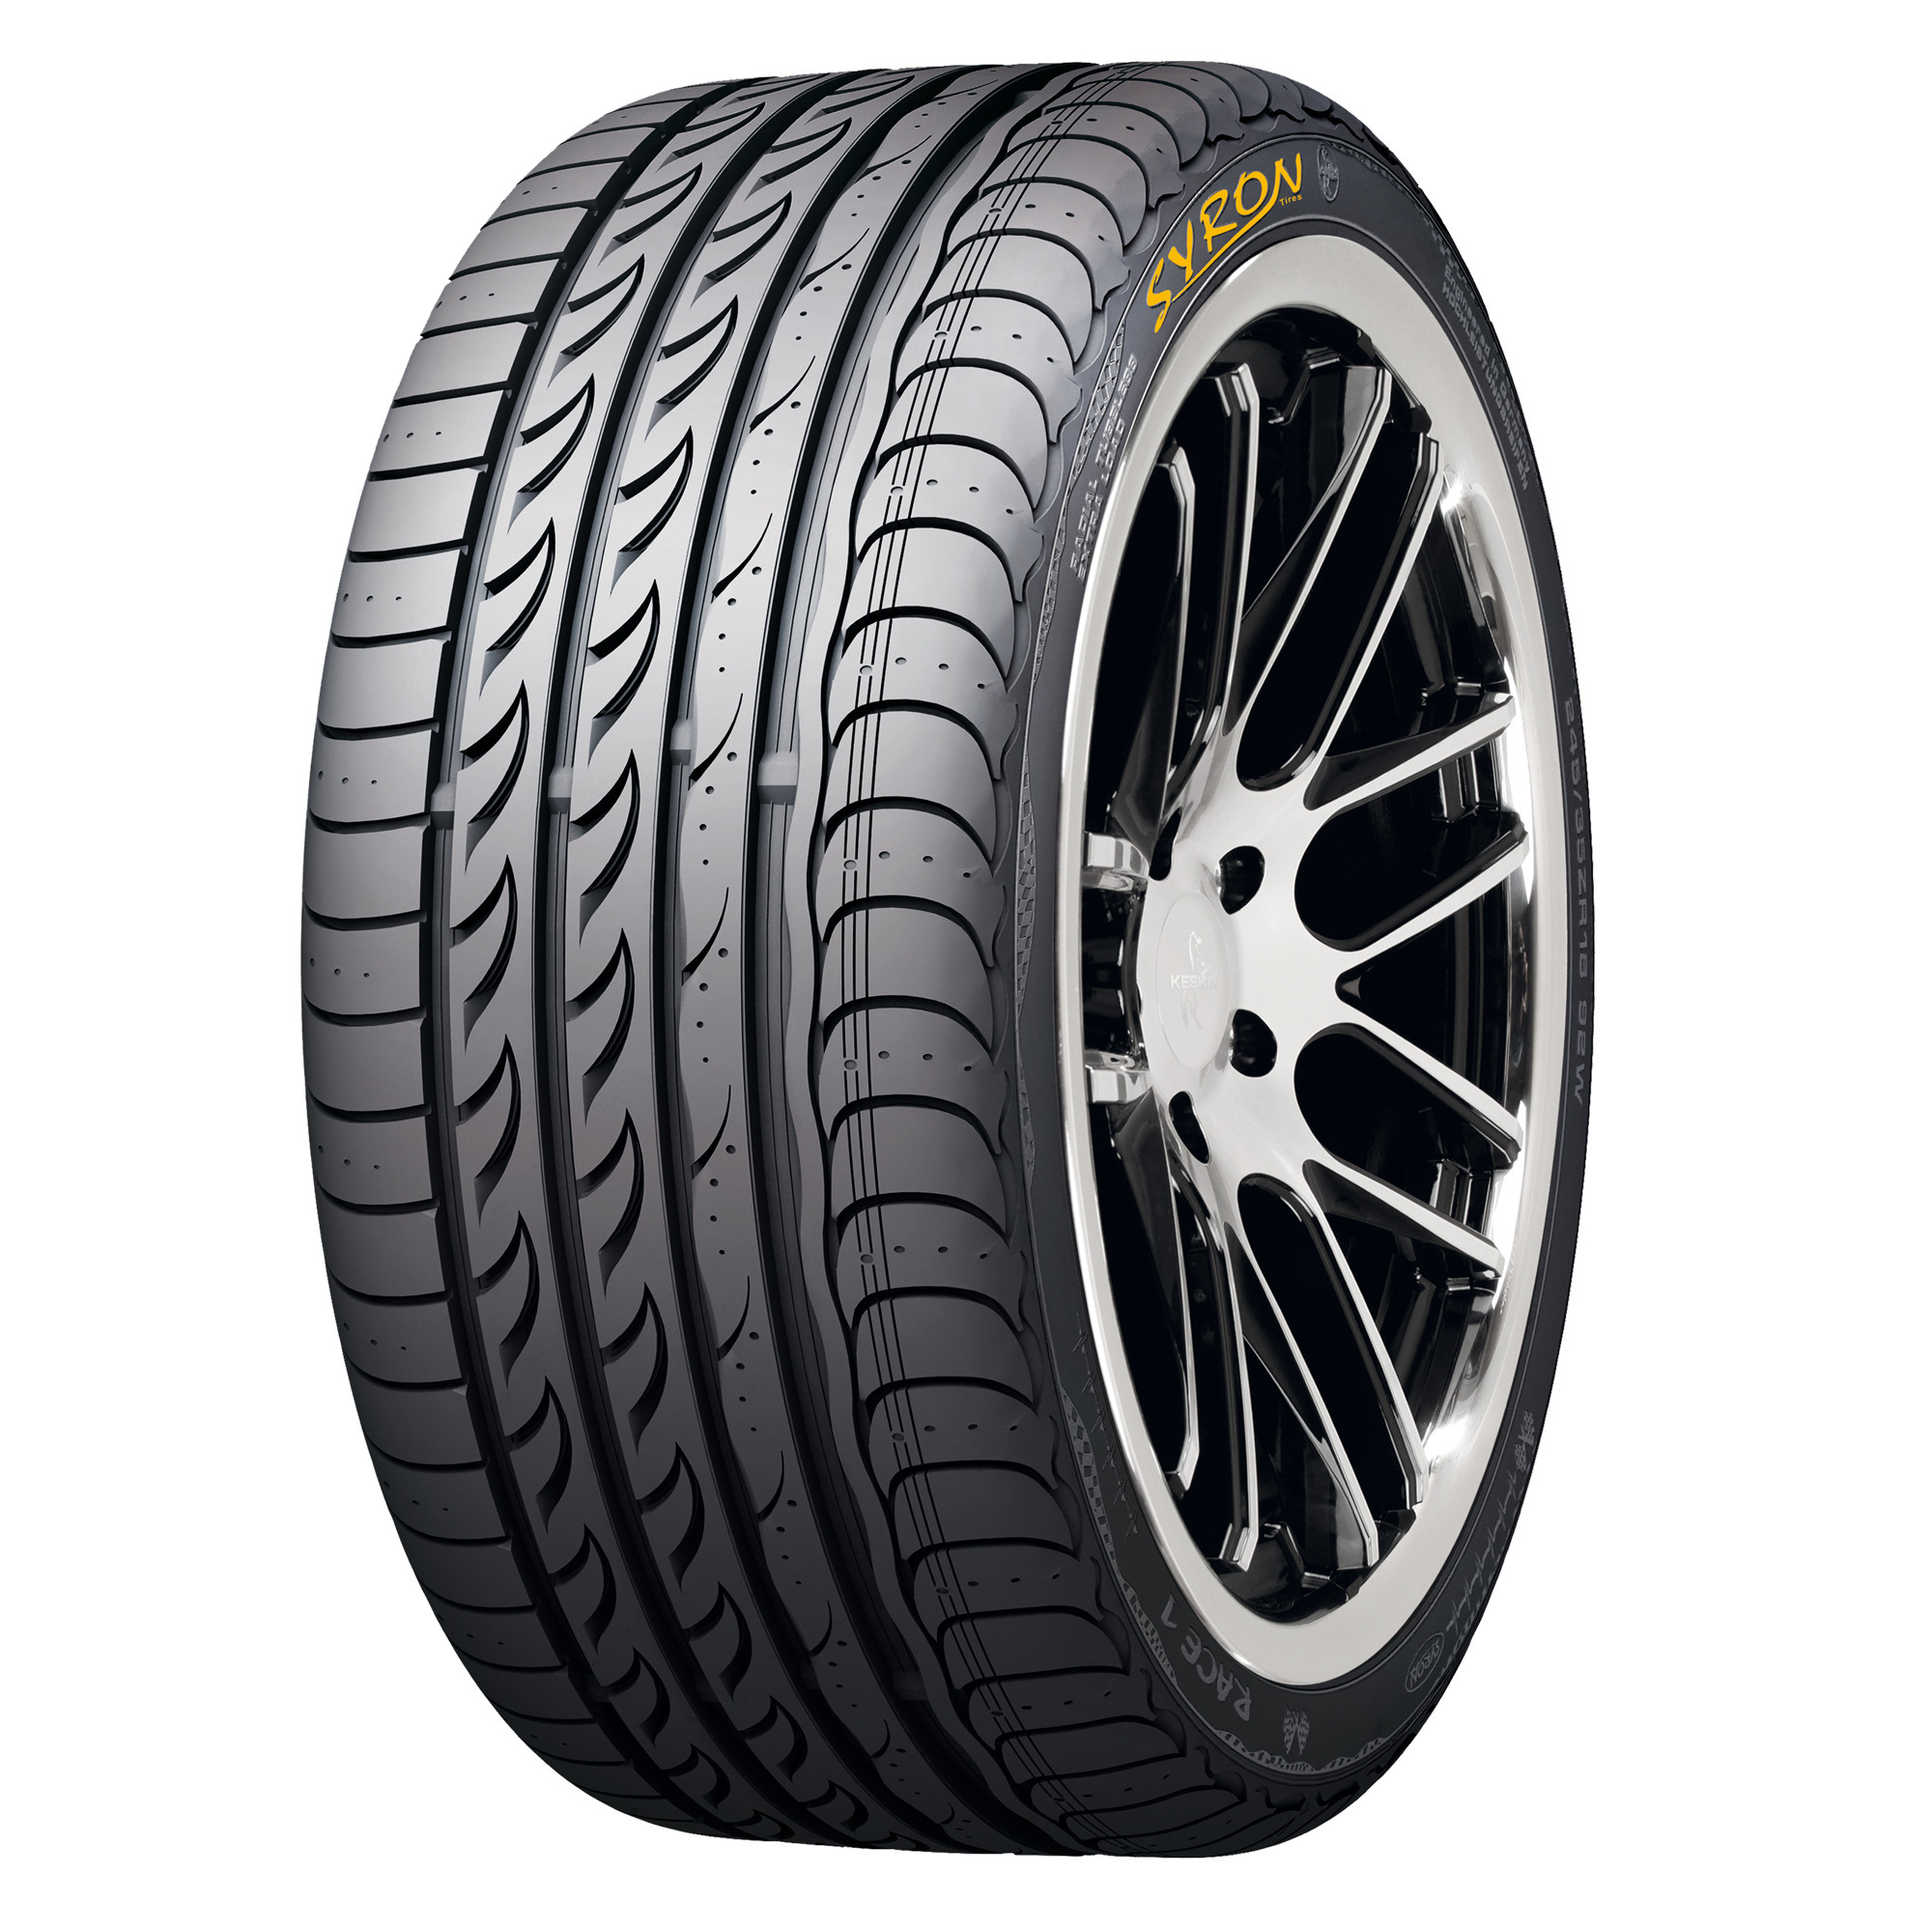 225/50R17 SYRON TIRES RACE1 plus 98W XL